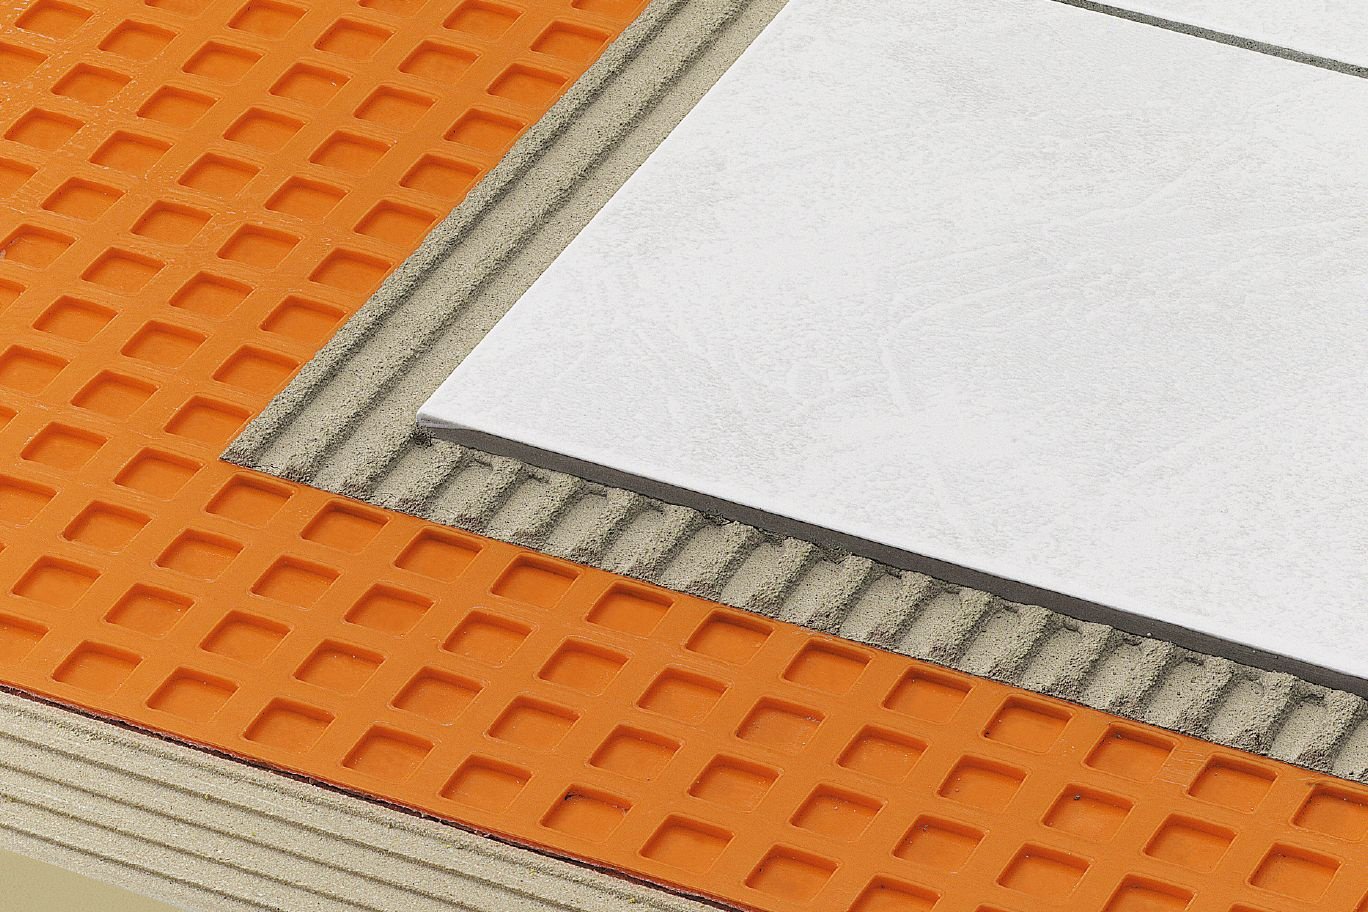 How thick backer board for tile floor gallery tile flooring what thickness backer board for floor tile image collections how to choose the right backer board dailygadgetfo Image collections